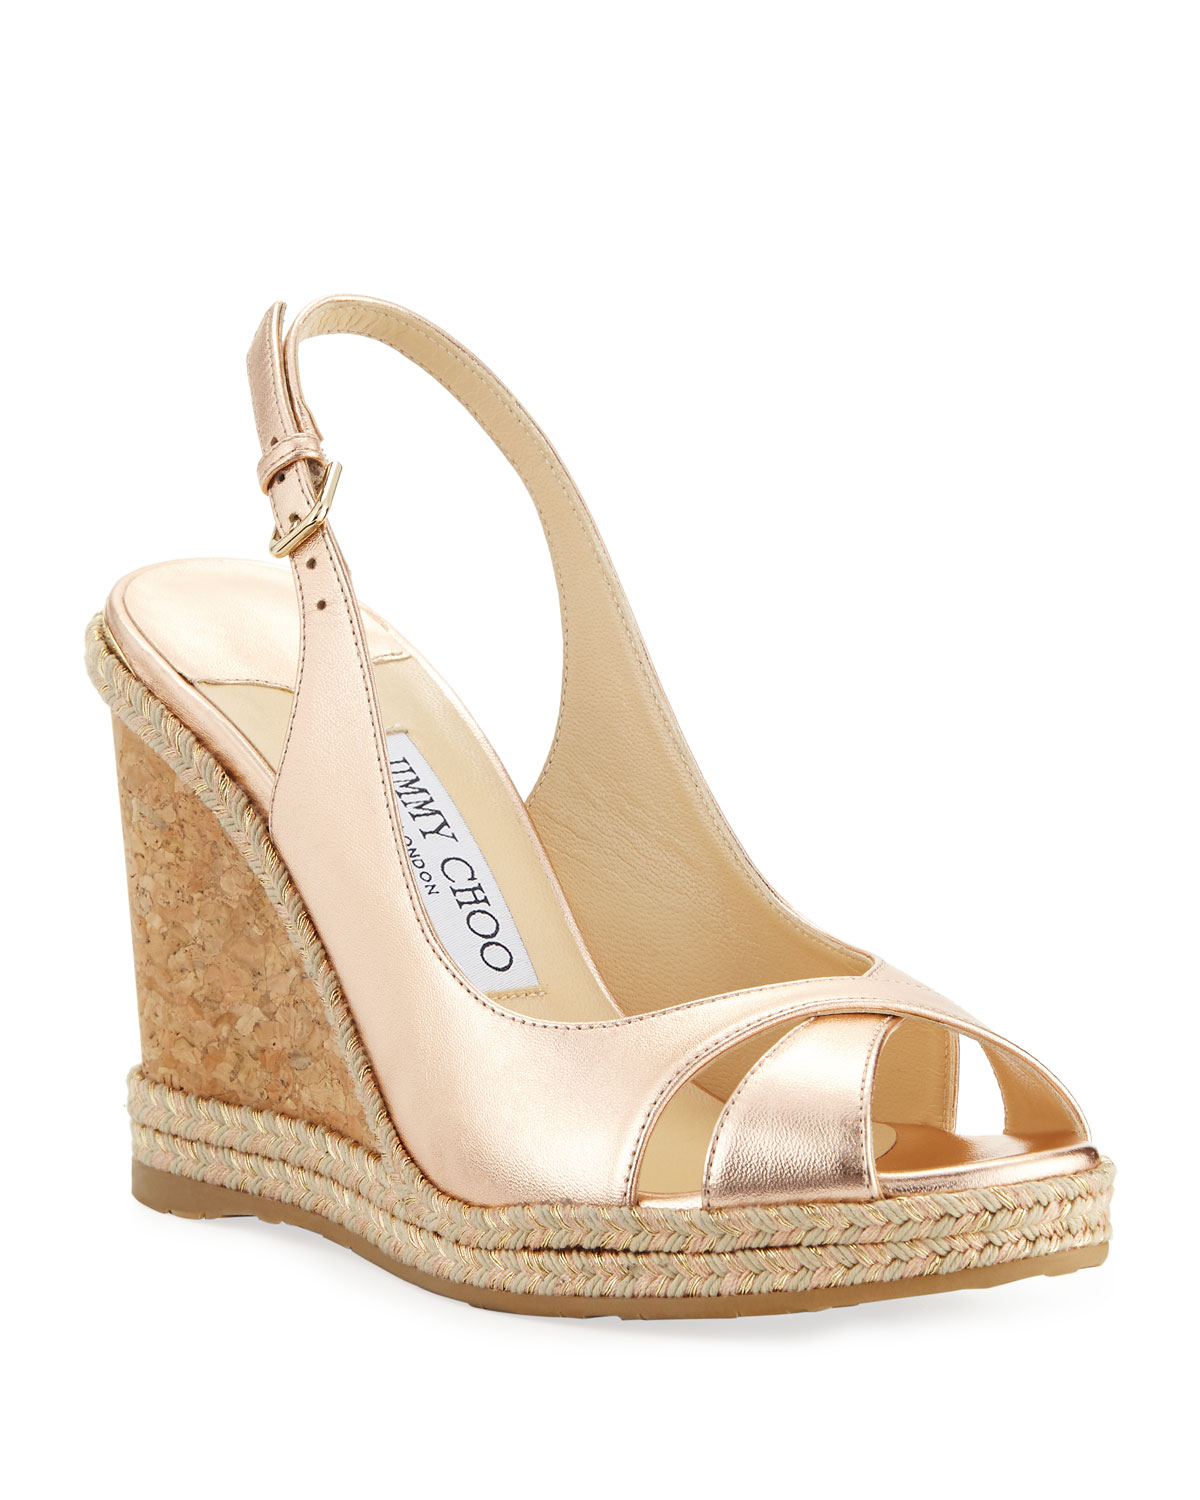 1df6791c62f7 Jimmy Choo Amely 105mm Metallic Leather Cork Wedge Sandals